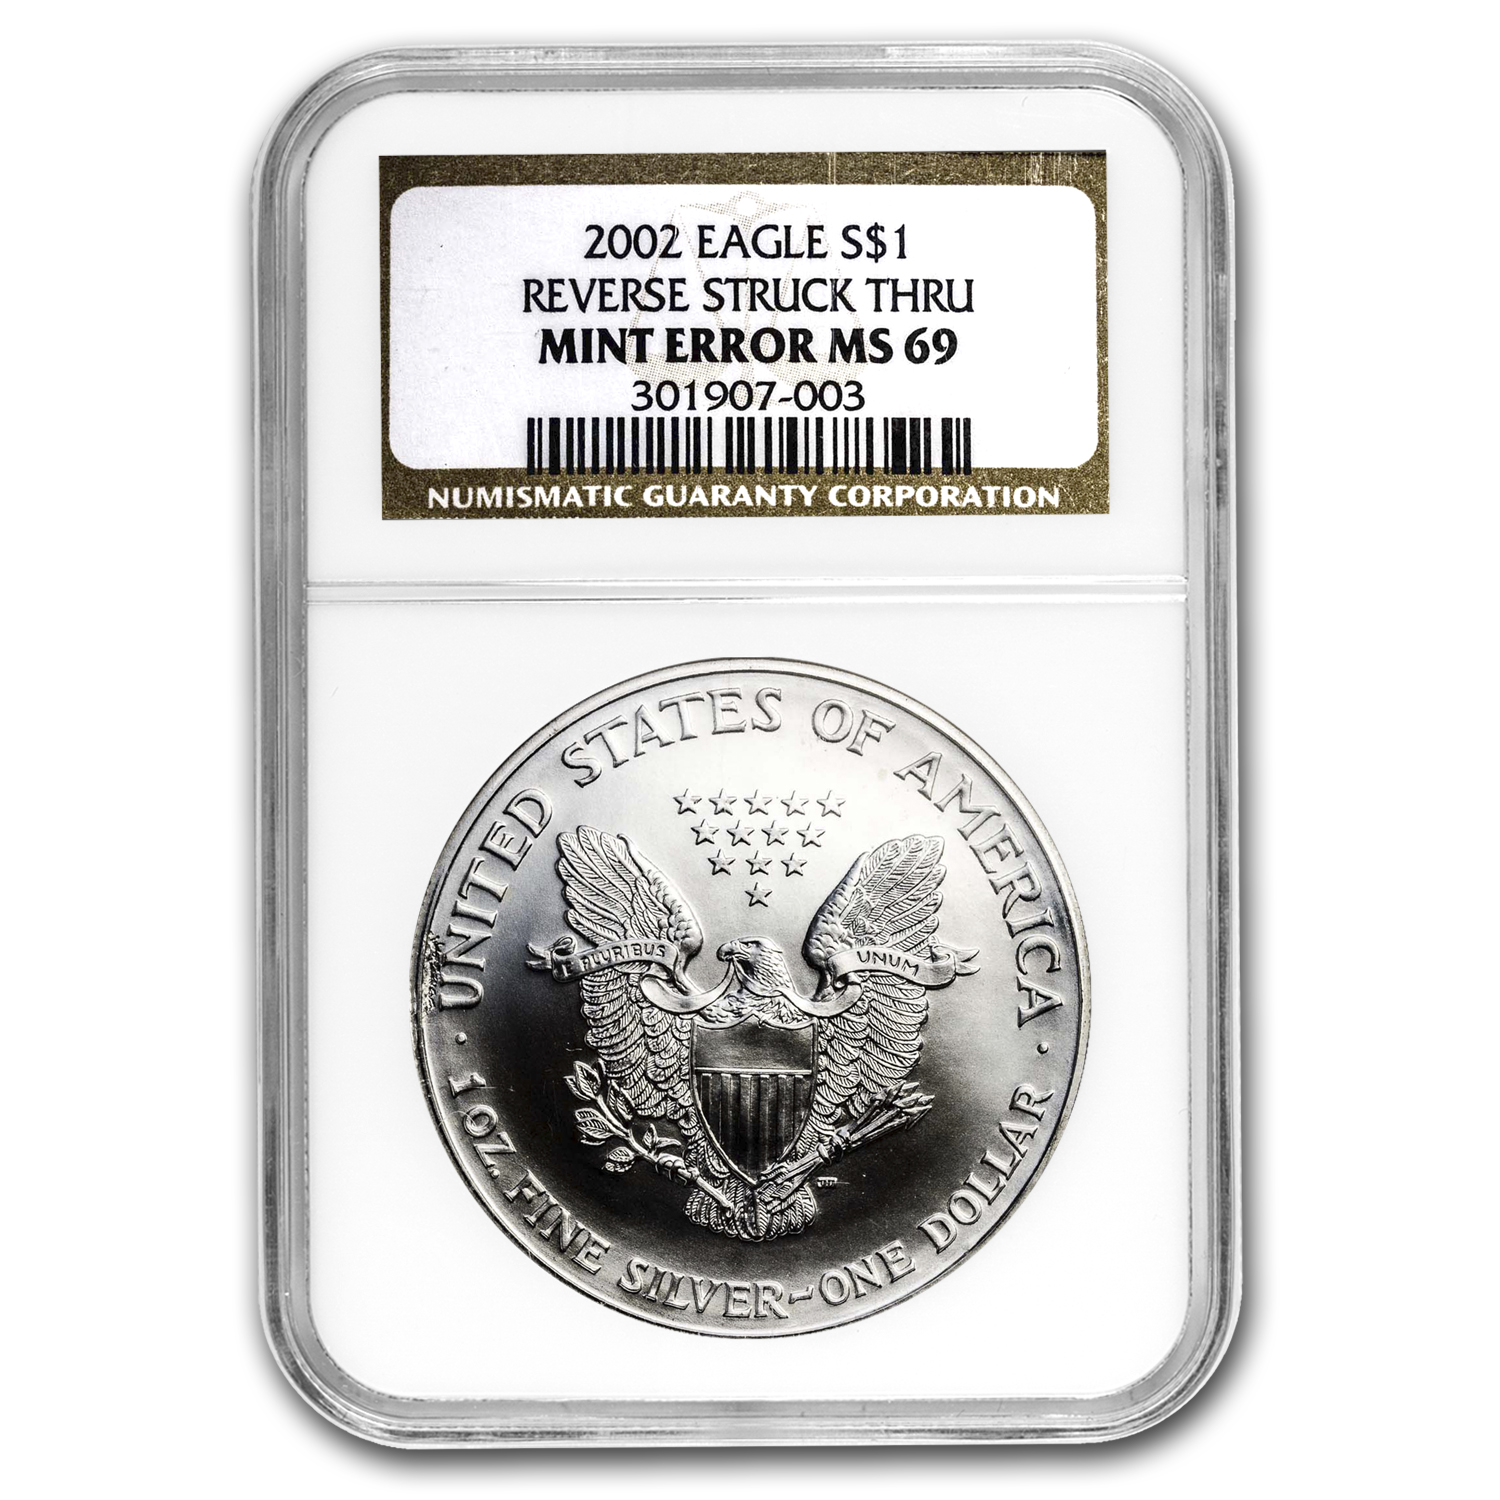 2002 Silver American Eagle MS-69 NGC Mint Error (Rev Struck Thru)